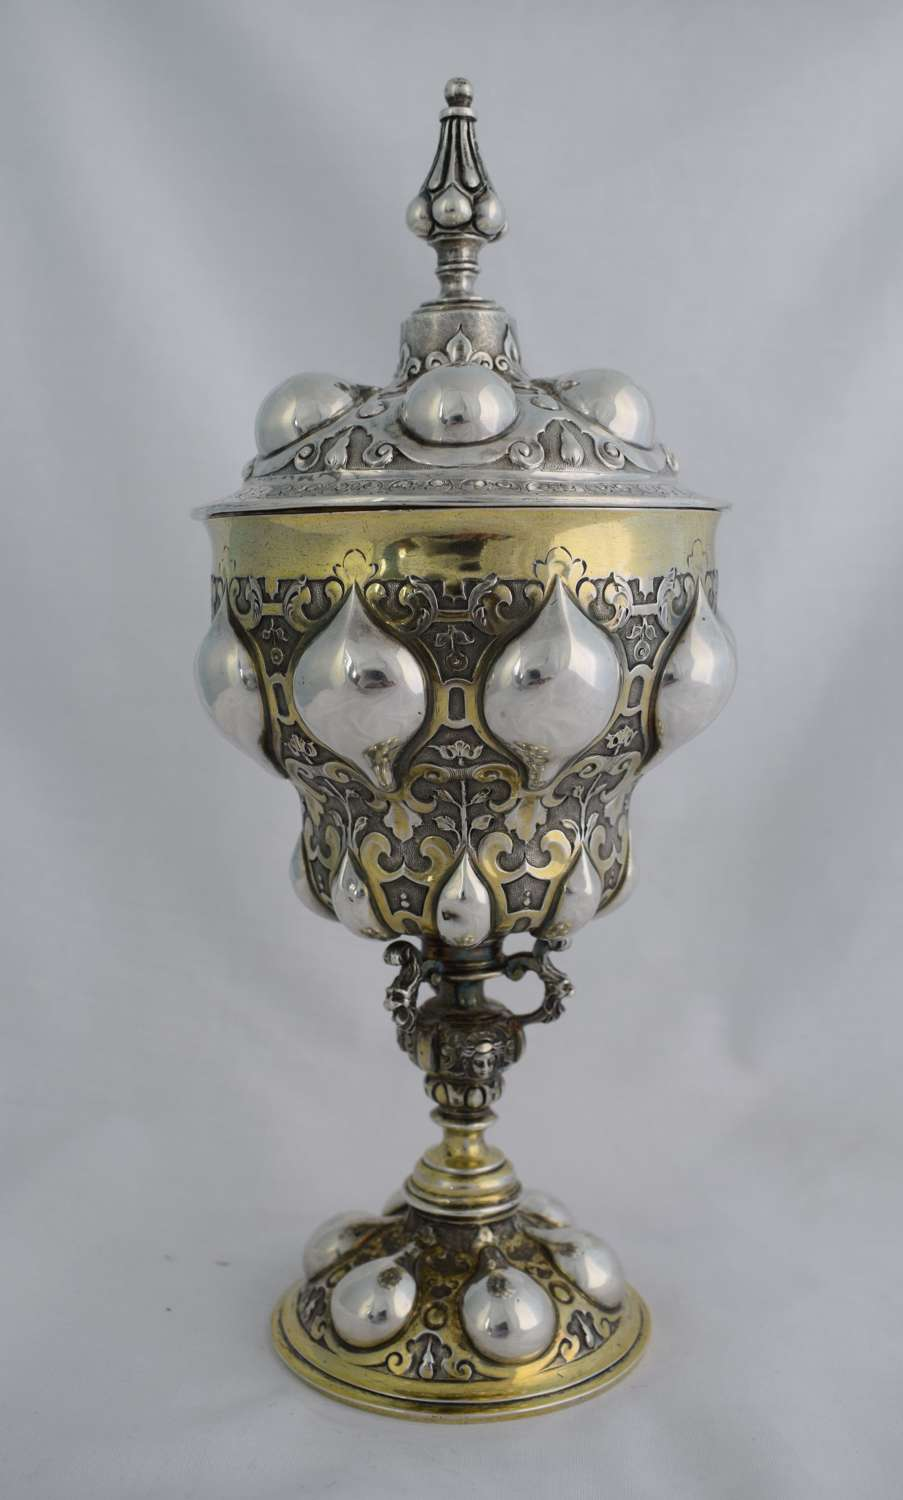 Victorian English Silver Pineapple Cup & Cover After Nuremberg